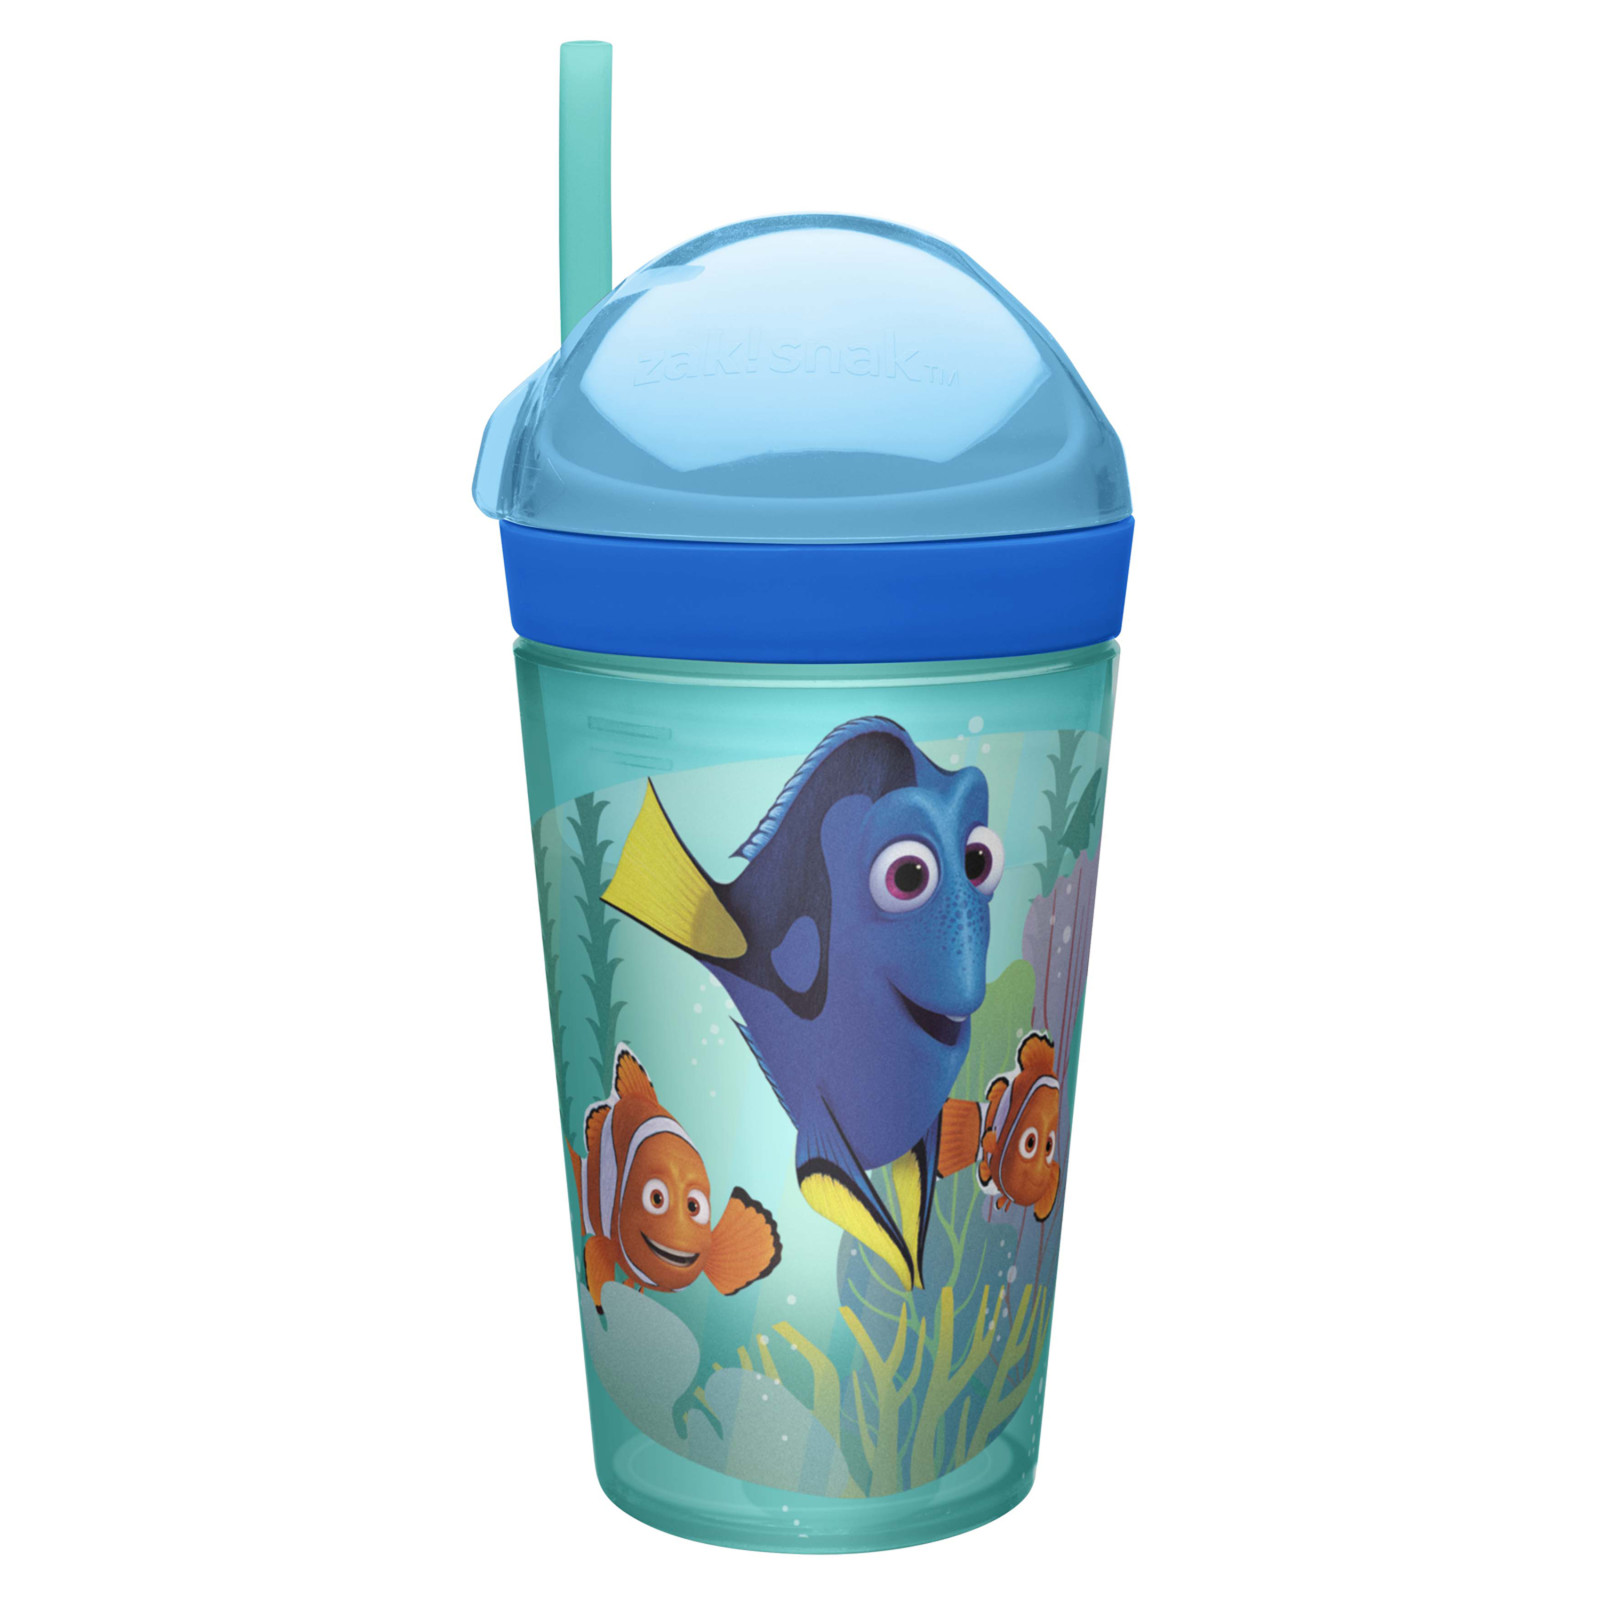 Finding Dory Snack Cups for sale | Finding Dory | Zak! | Zak Designs